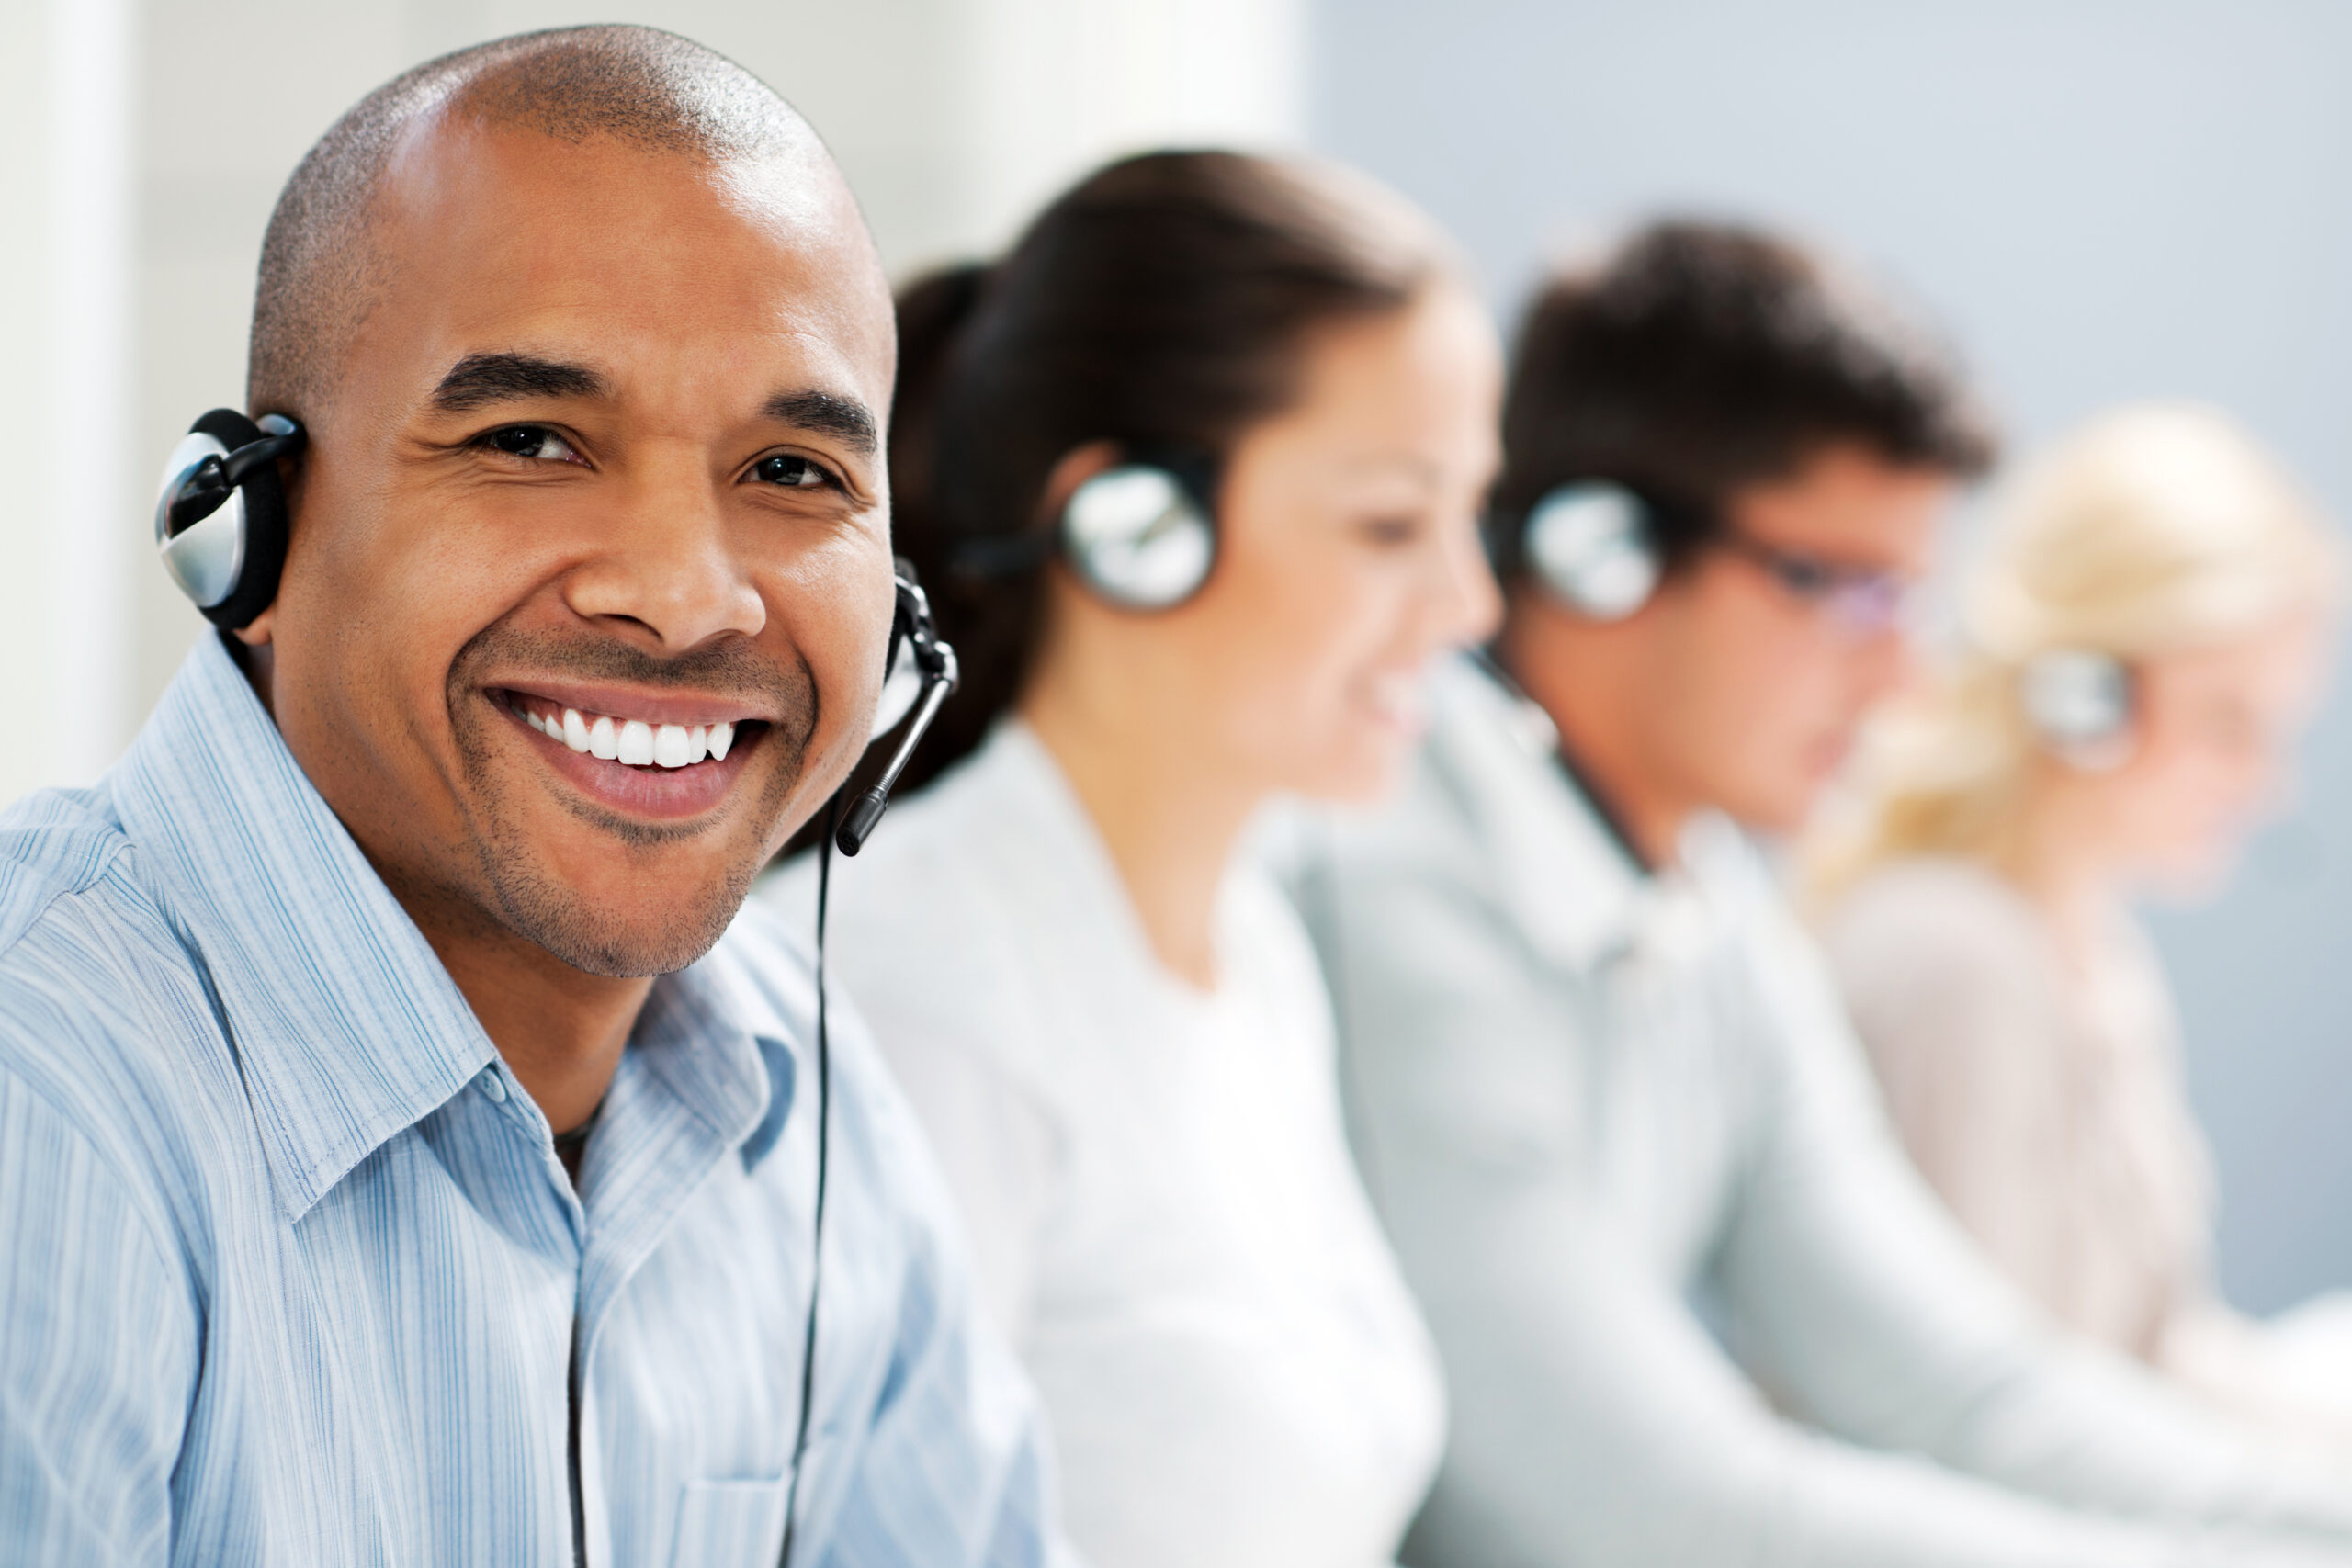 Group of confident young customer service agents with headset. The focus is on the African man looking at camera.